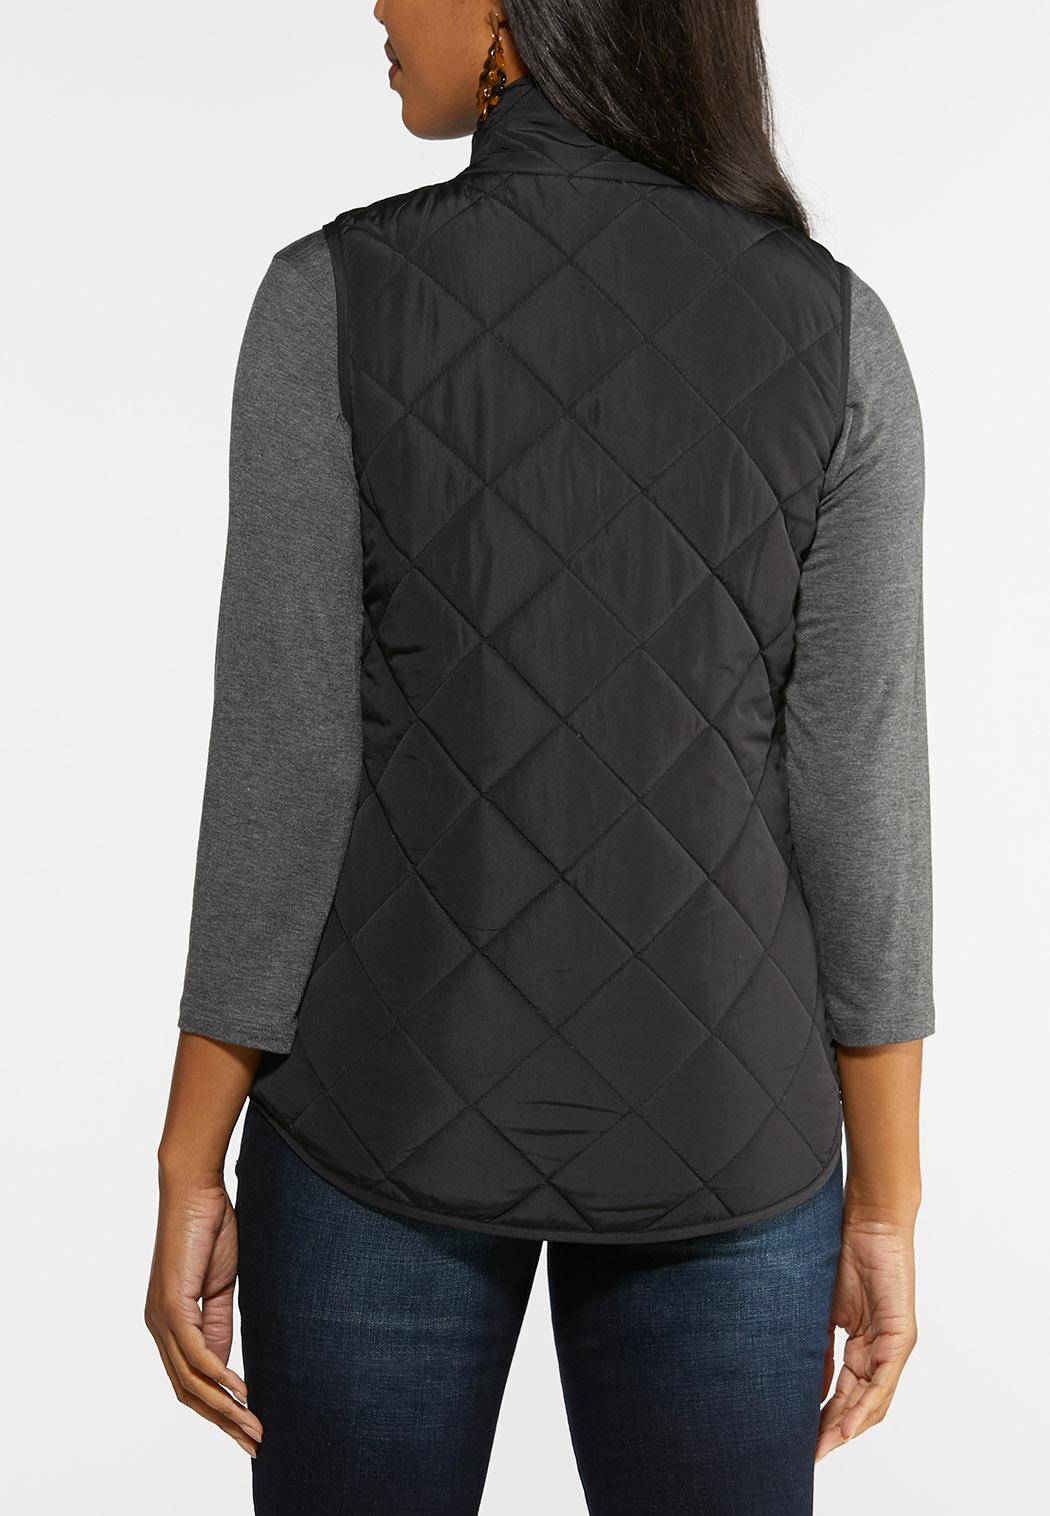 Quilted Puffer Vest (Item #43993979)